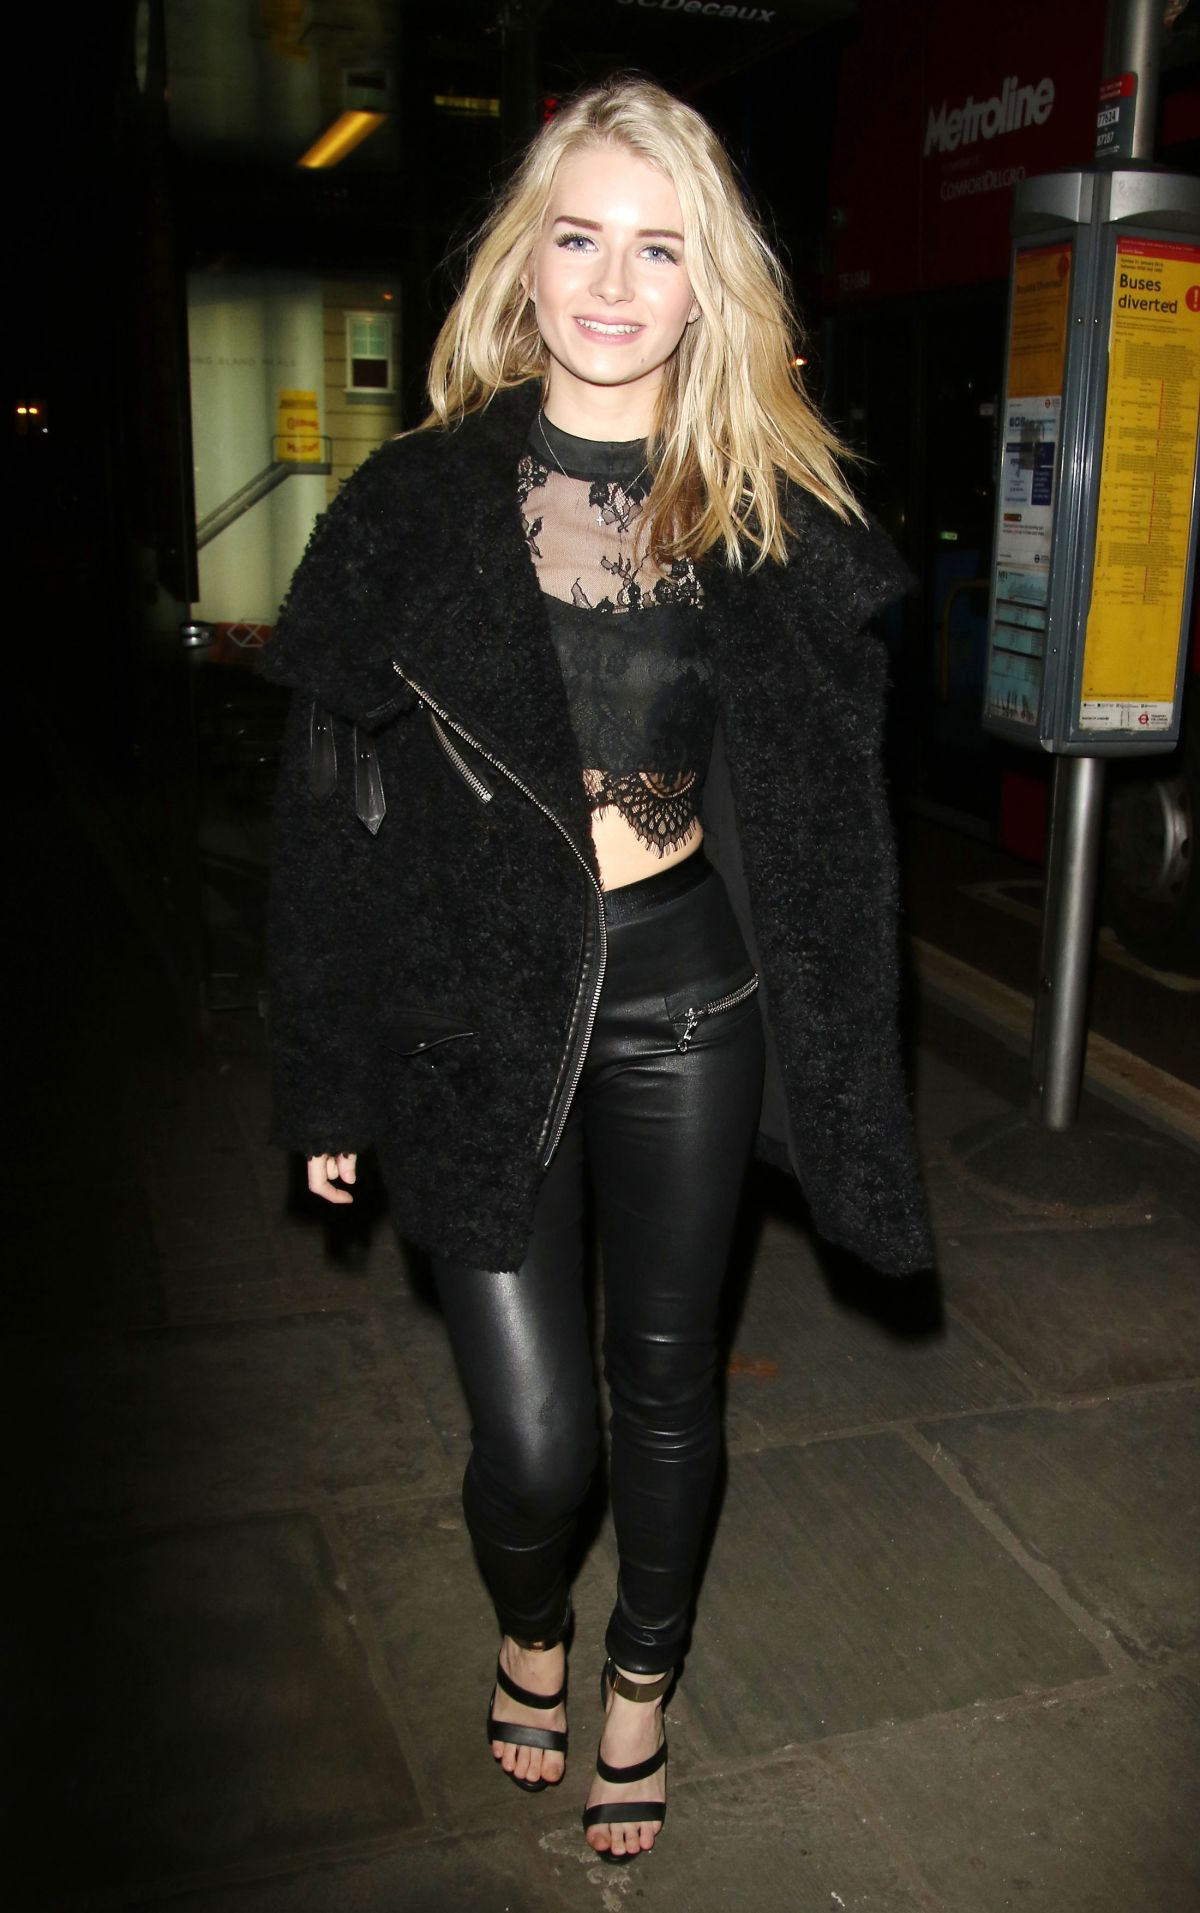 LOTTIE MOSS at Centrepoint Ultimate Pub Quiz in London 02/02/2016